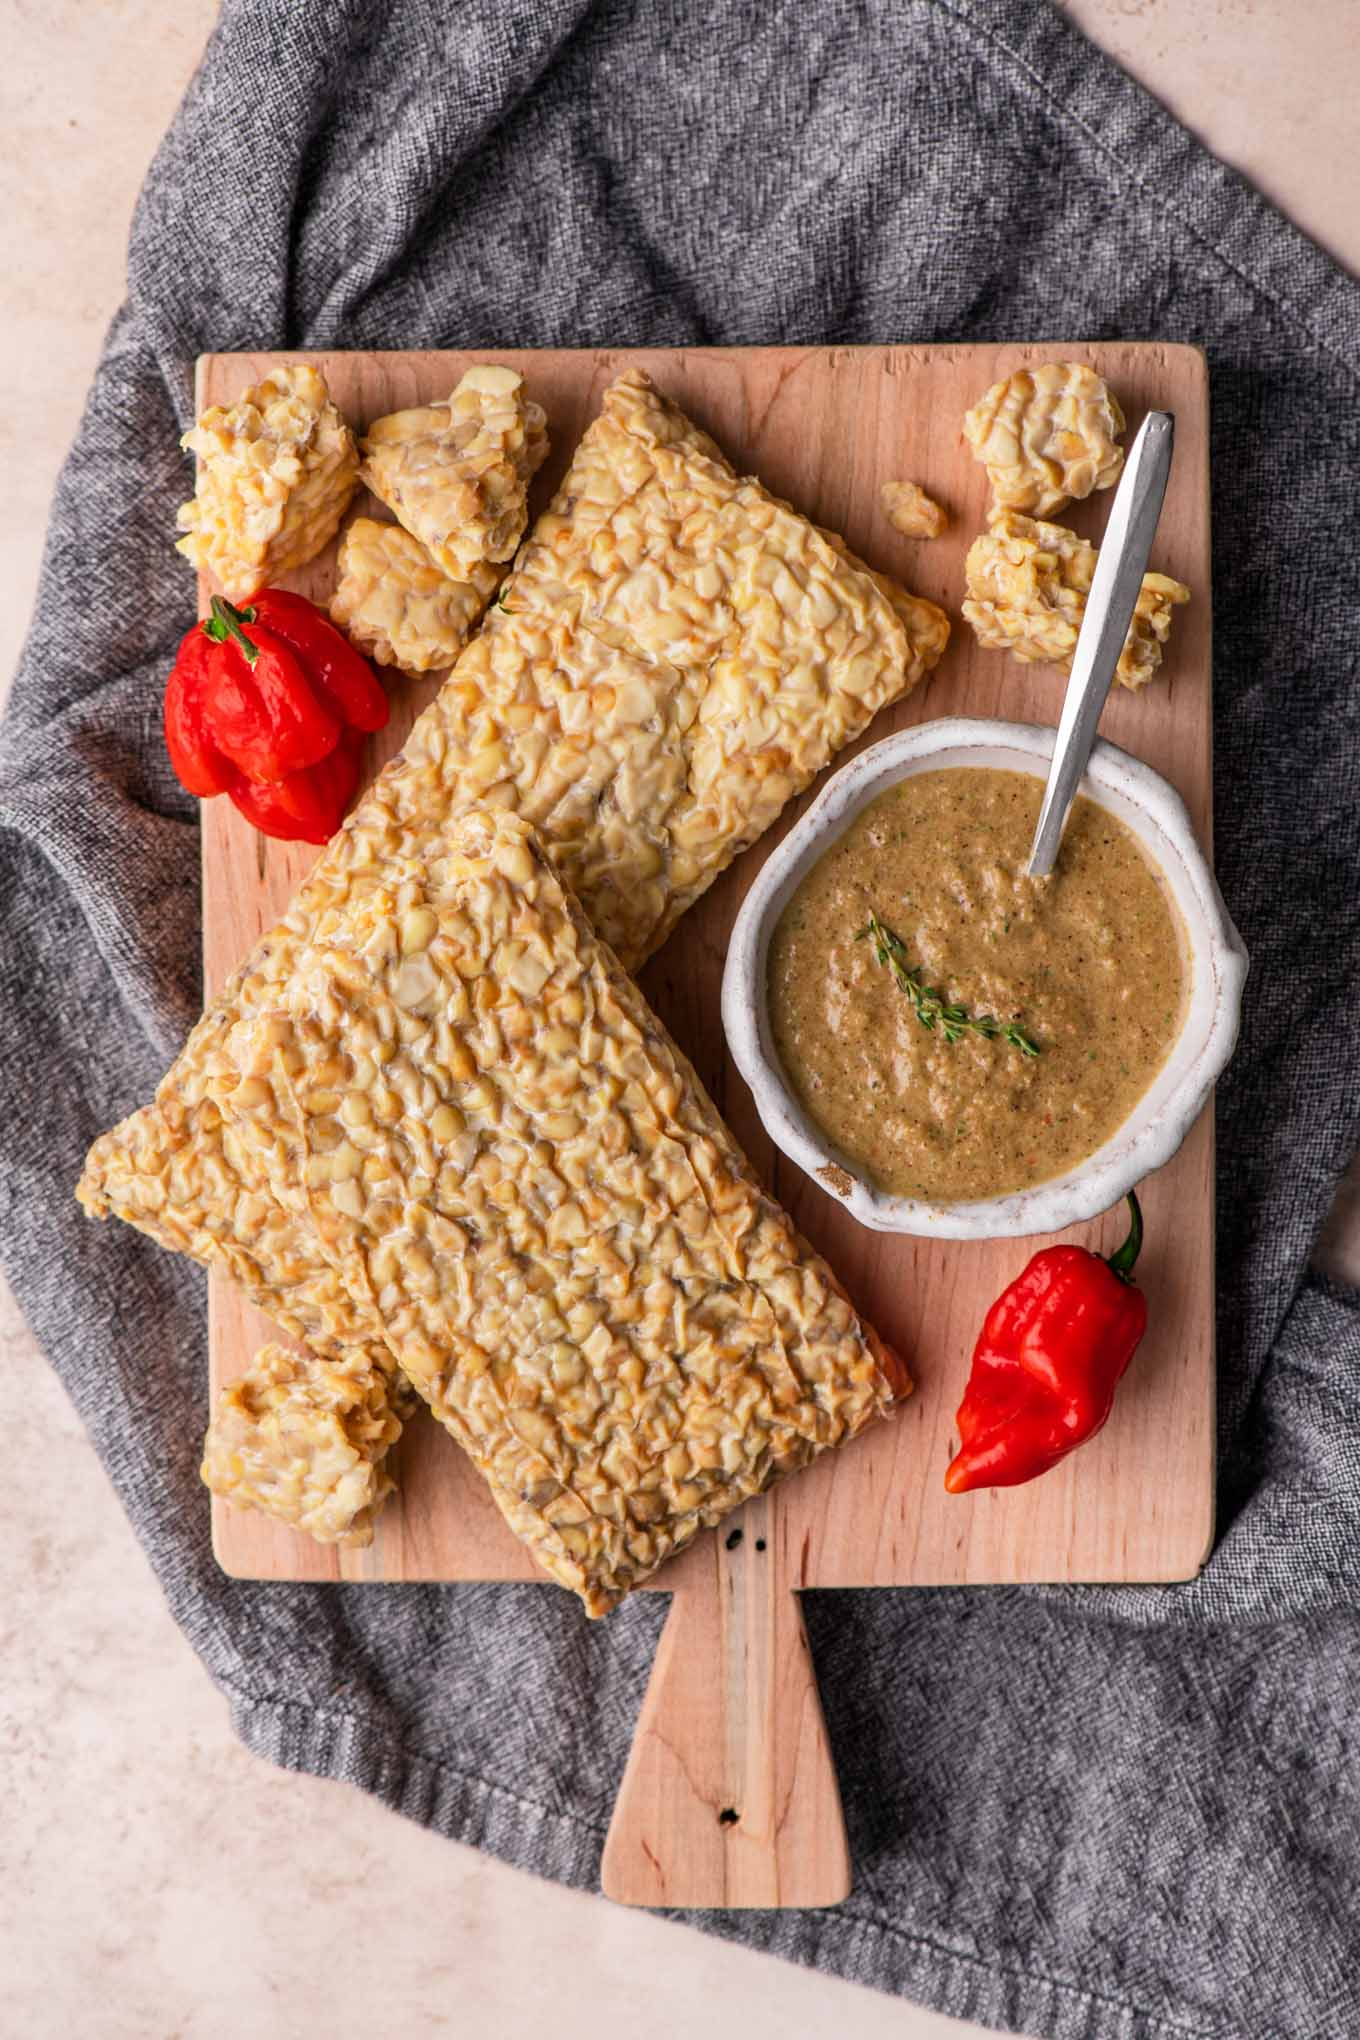 tempeh and jerk sauce on a cutting board